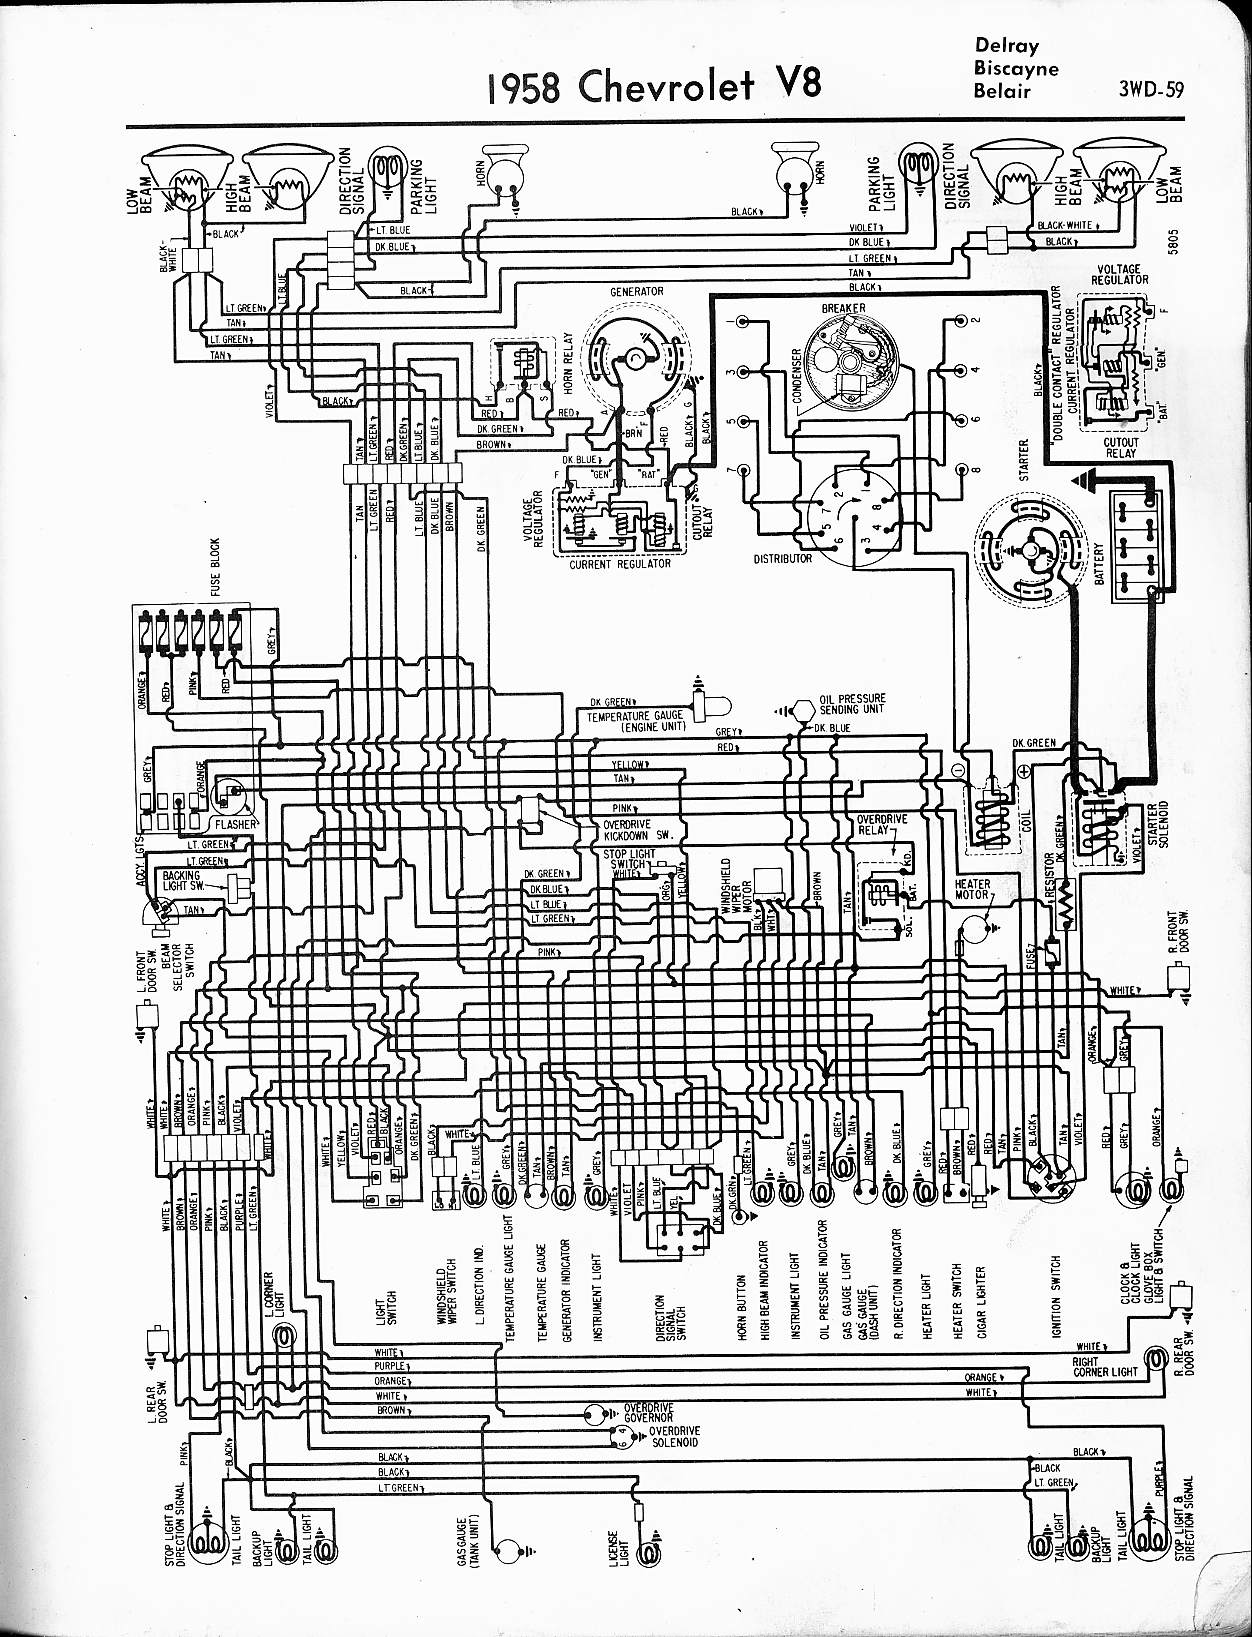 wiring for chevy truck trailer wiring 2004 chevy truck 57 - 65 chevy wiring diagrams